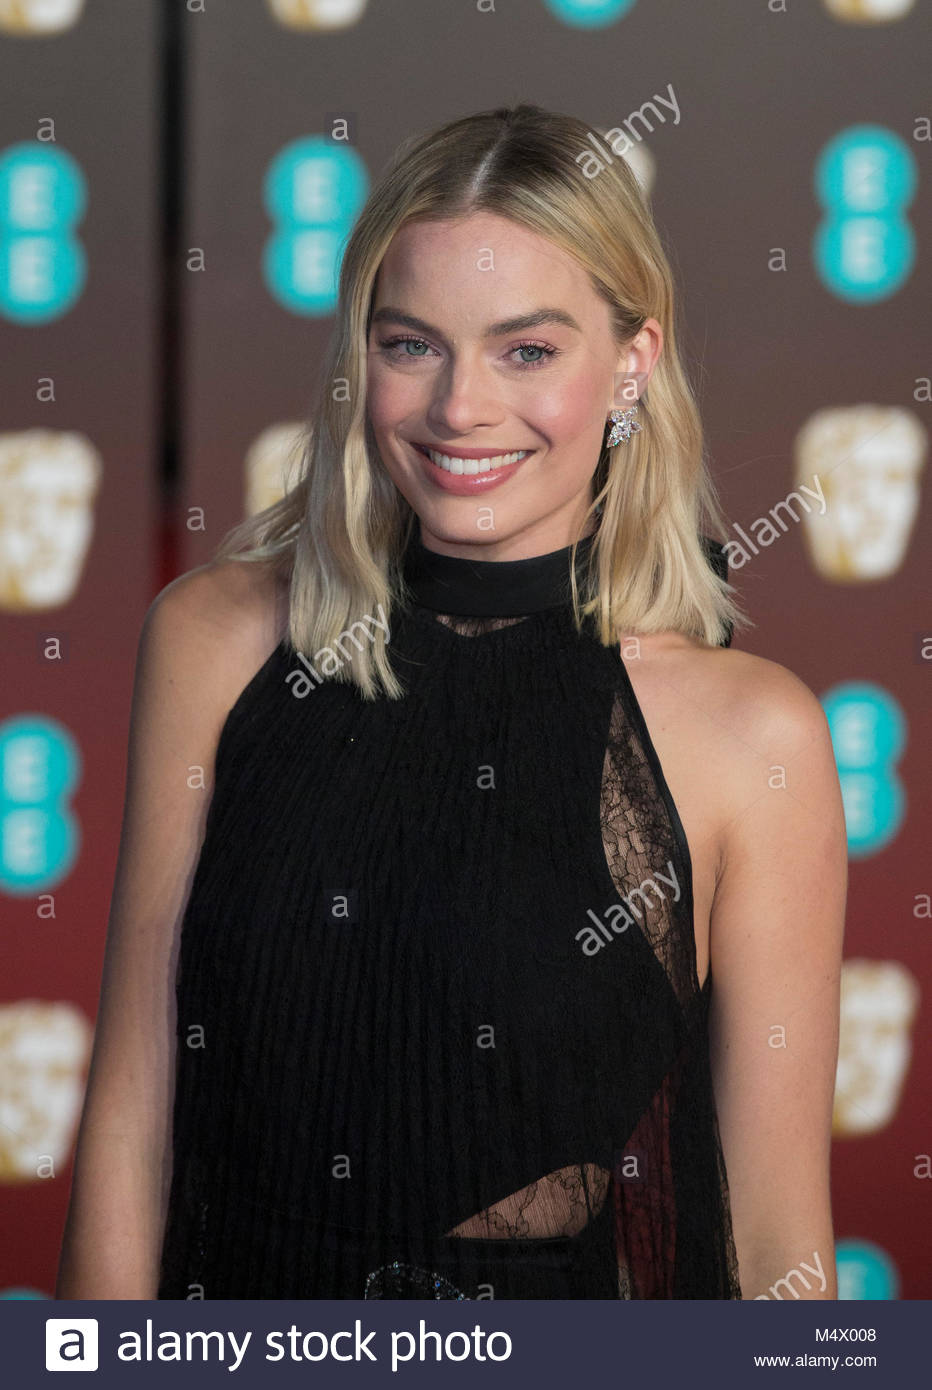 London, UK. 18th Feb 2018. Margot Robbie at The BAFTA awards ceremony are held at the Royal Albert Hall in London. Stock Photo